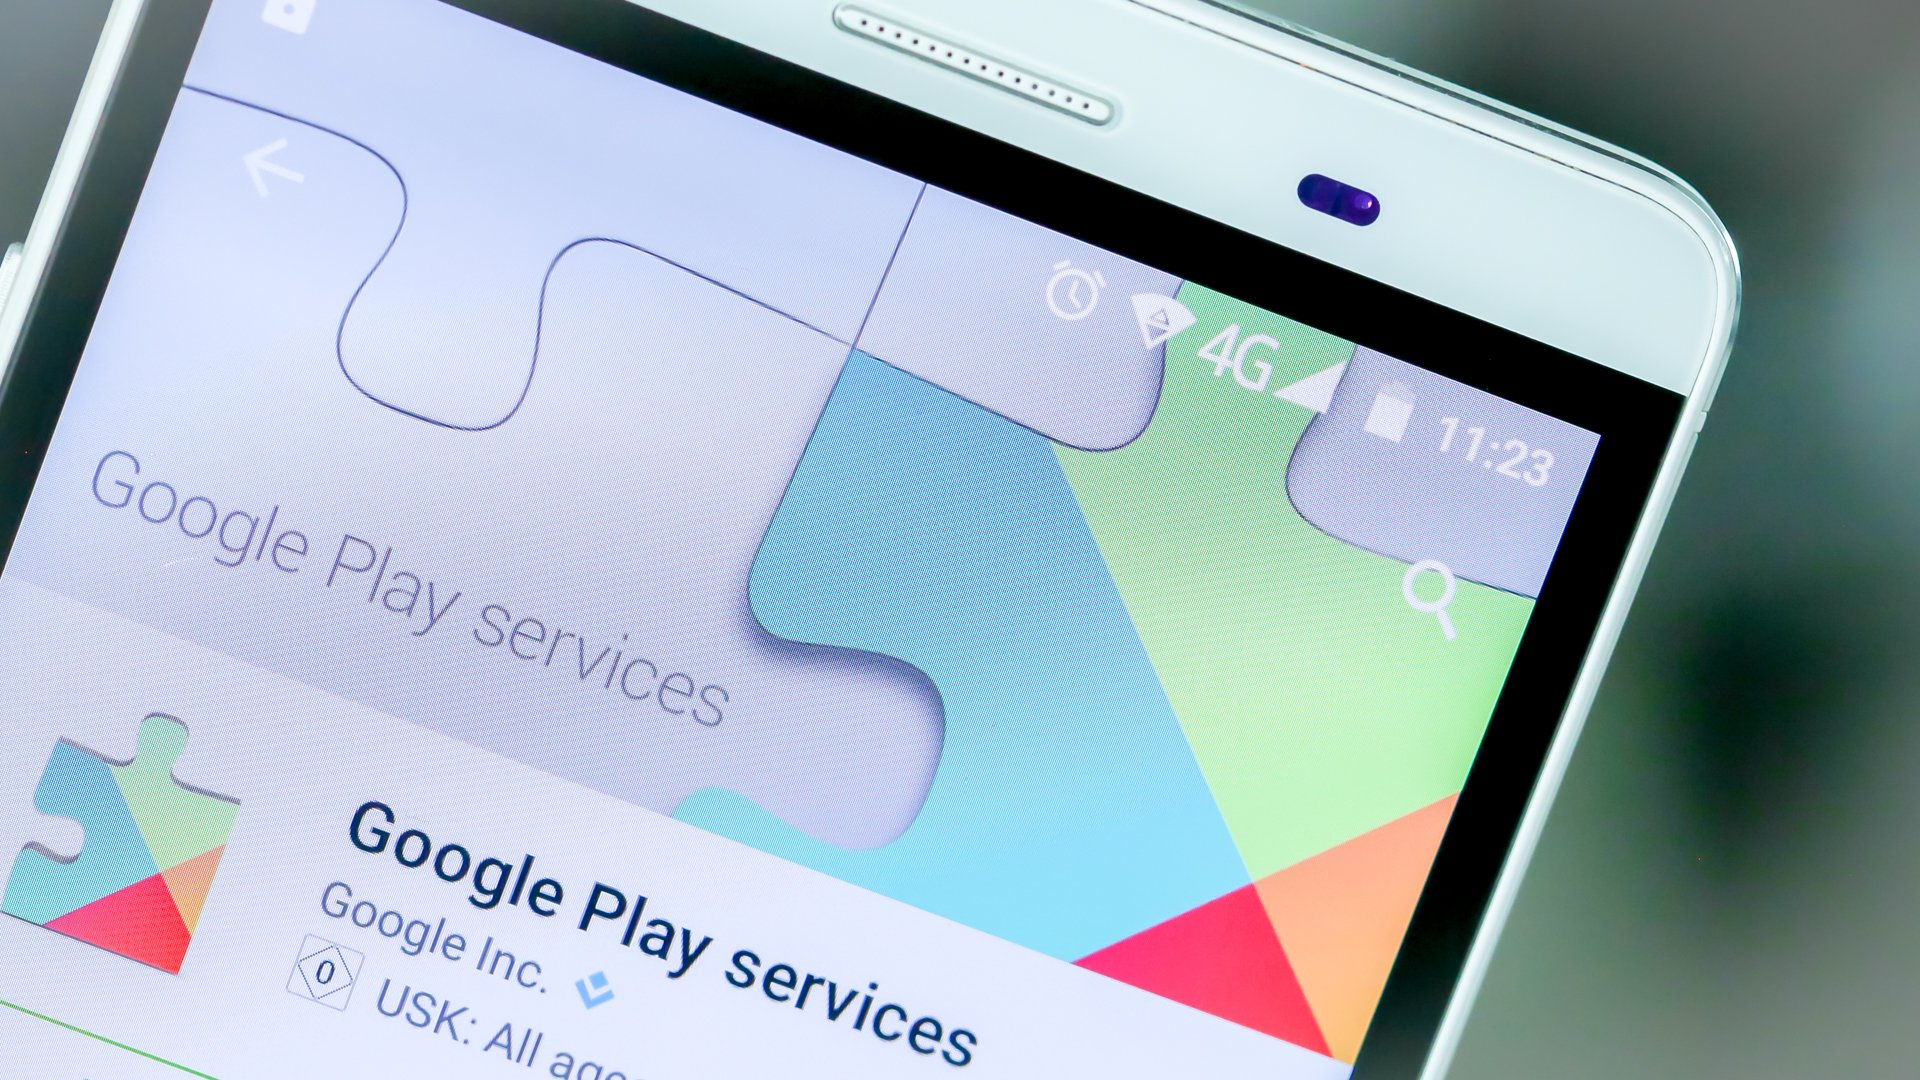 download Google Play Services 11.5.03 APK